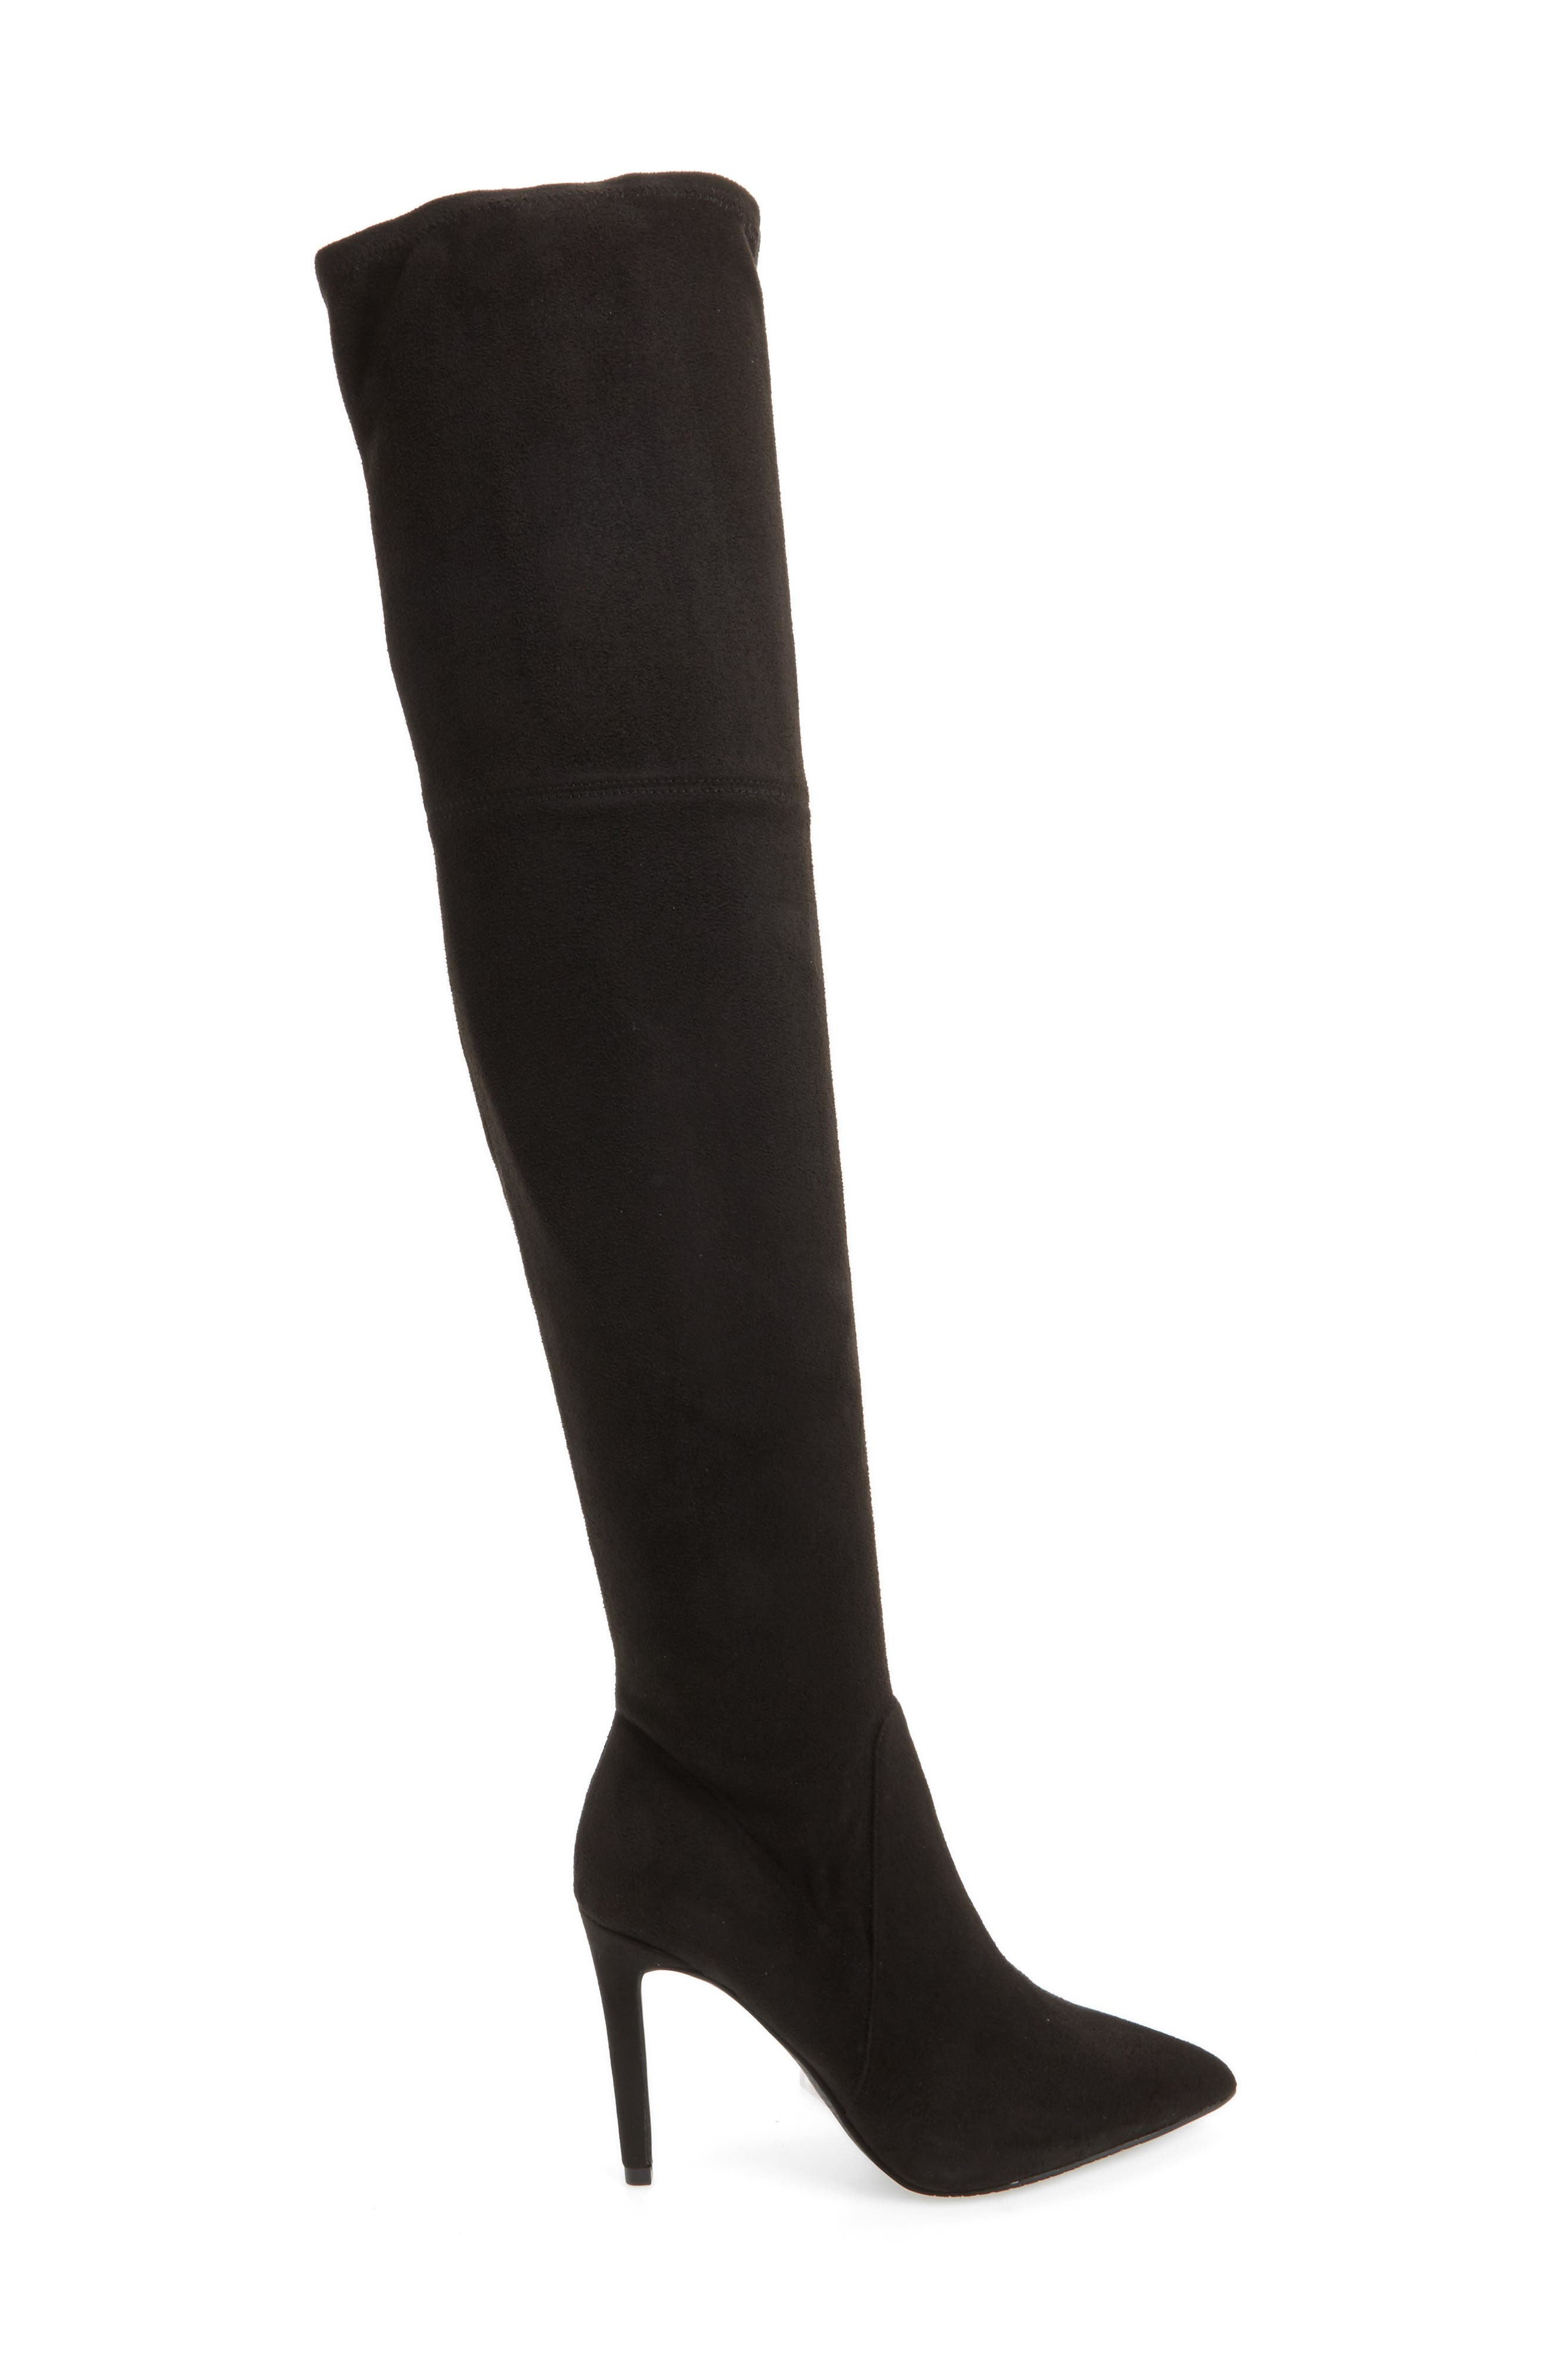 Fab Nara Over the Knee Boot,                             Alternate thumbnail 3, color,                             Black Stretch Faux Suede